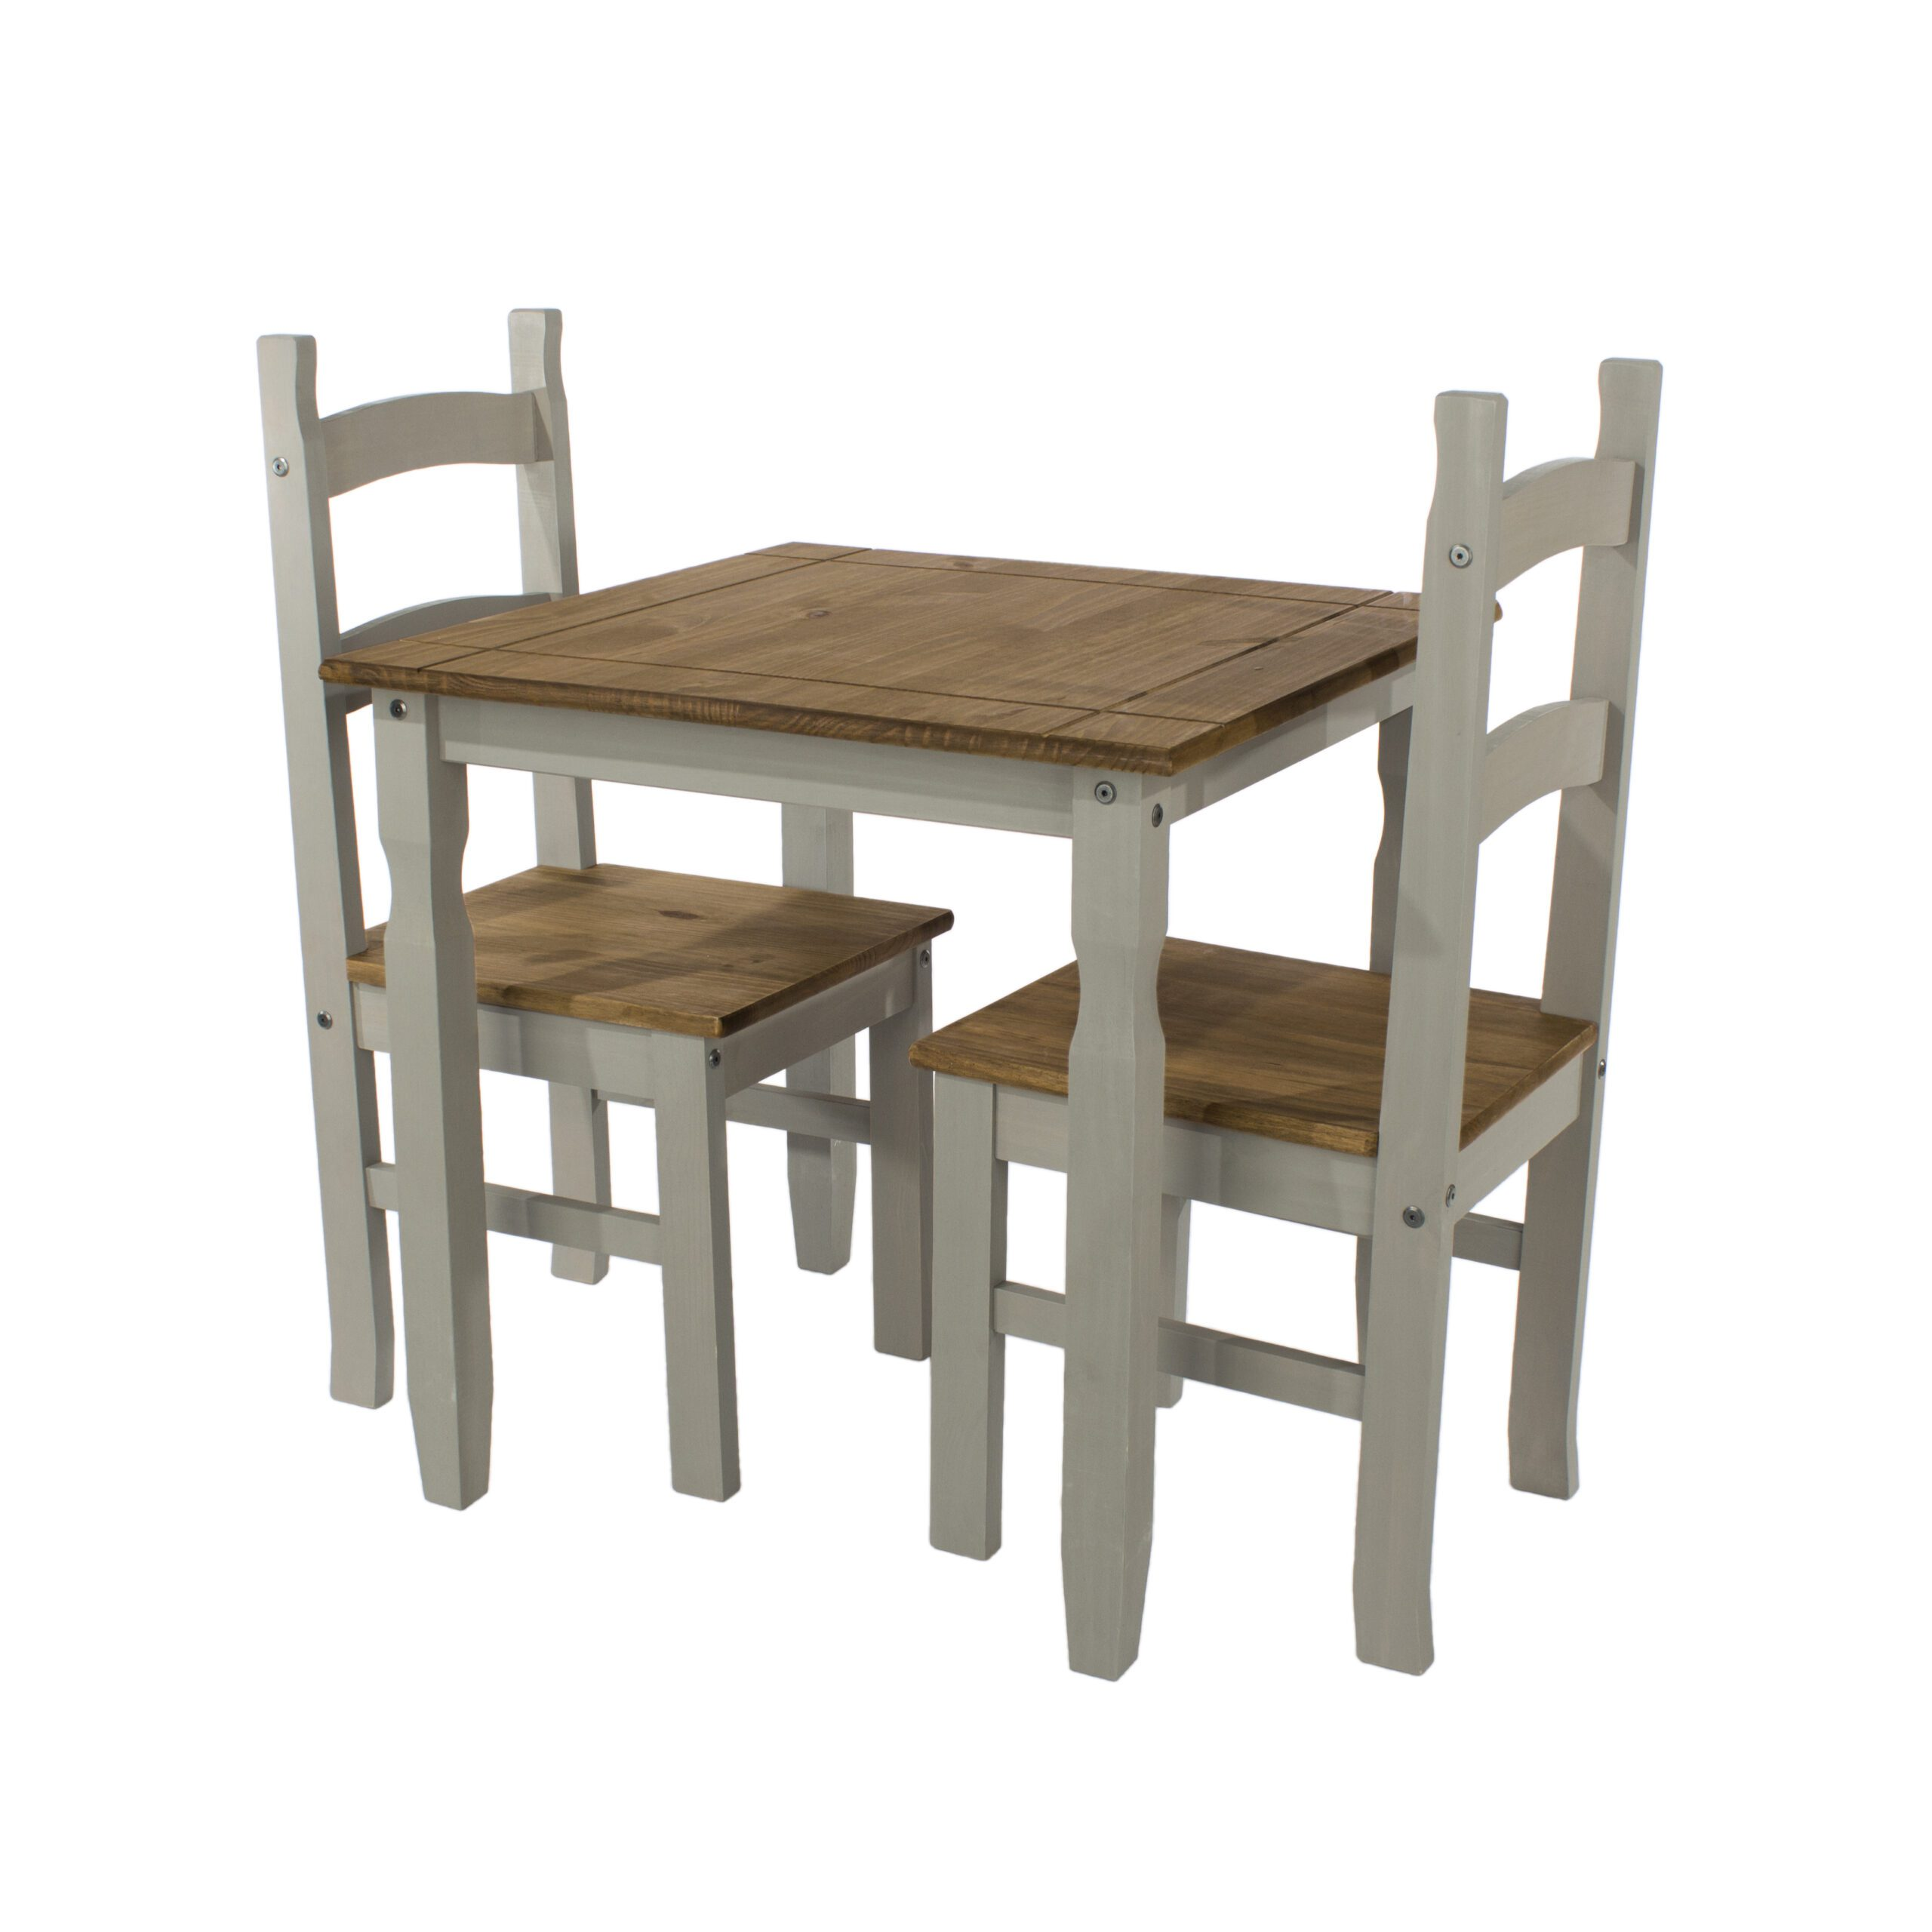 Coson Grey Square Table & 2 Chair Set